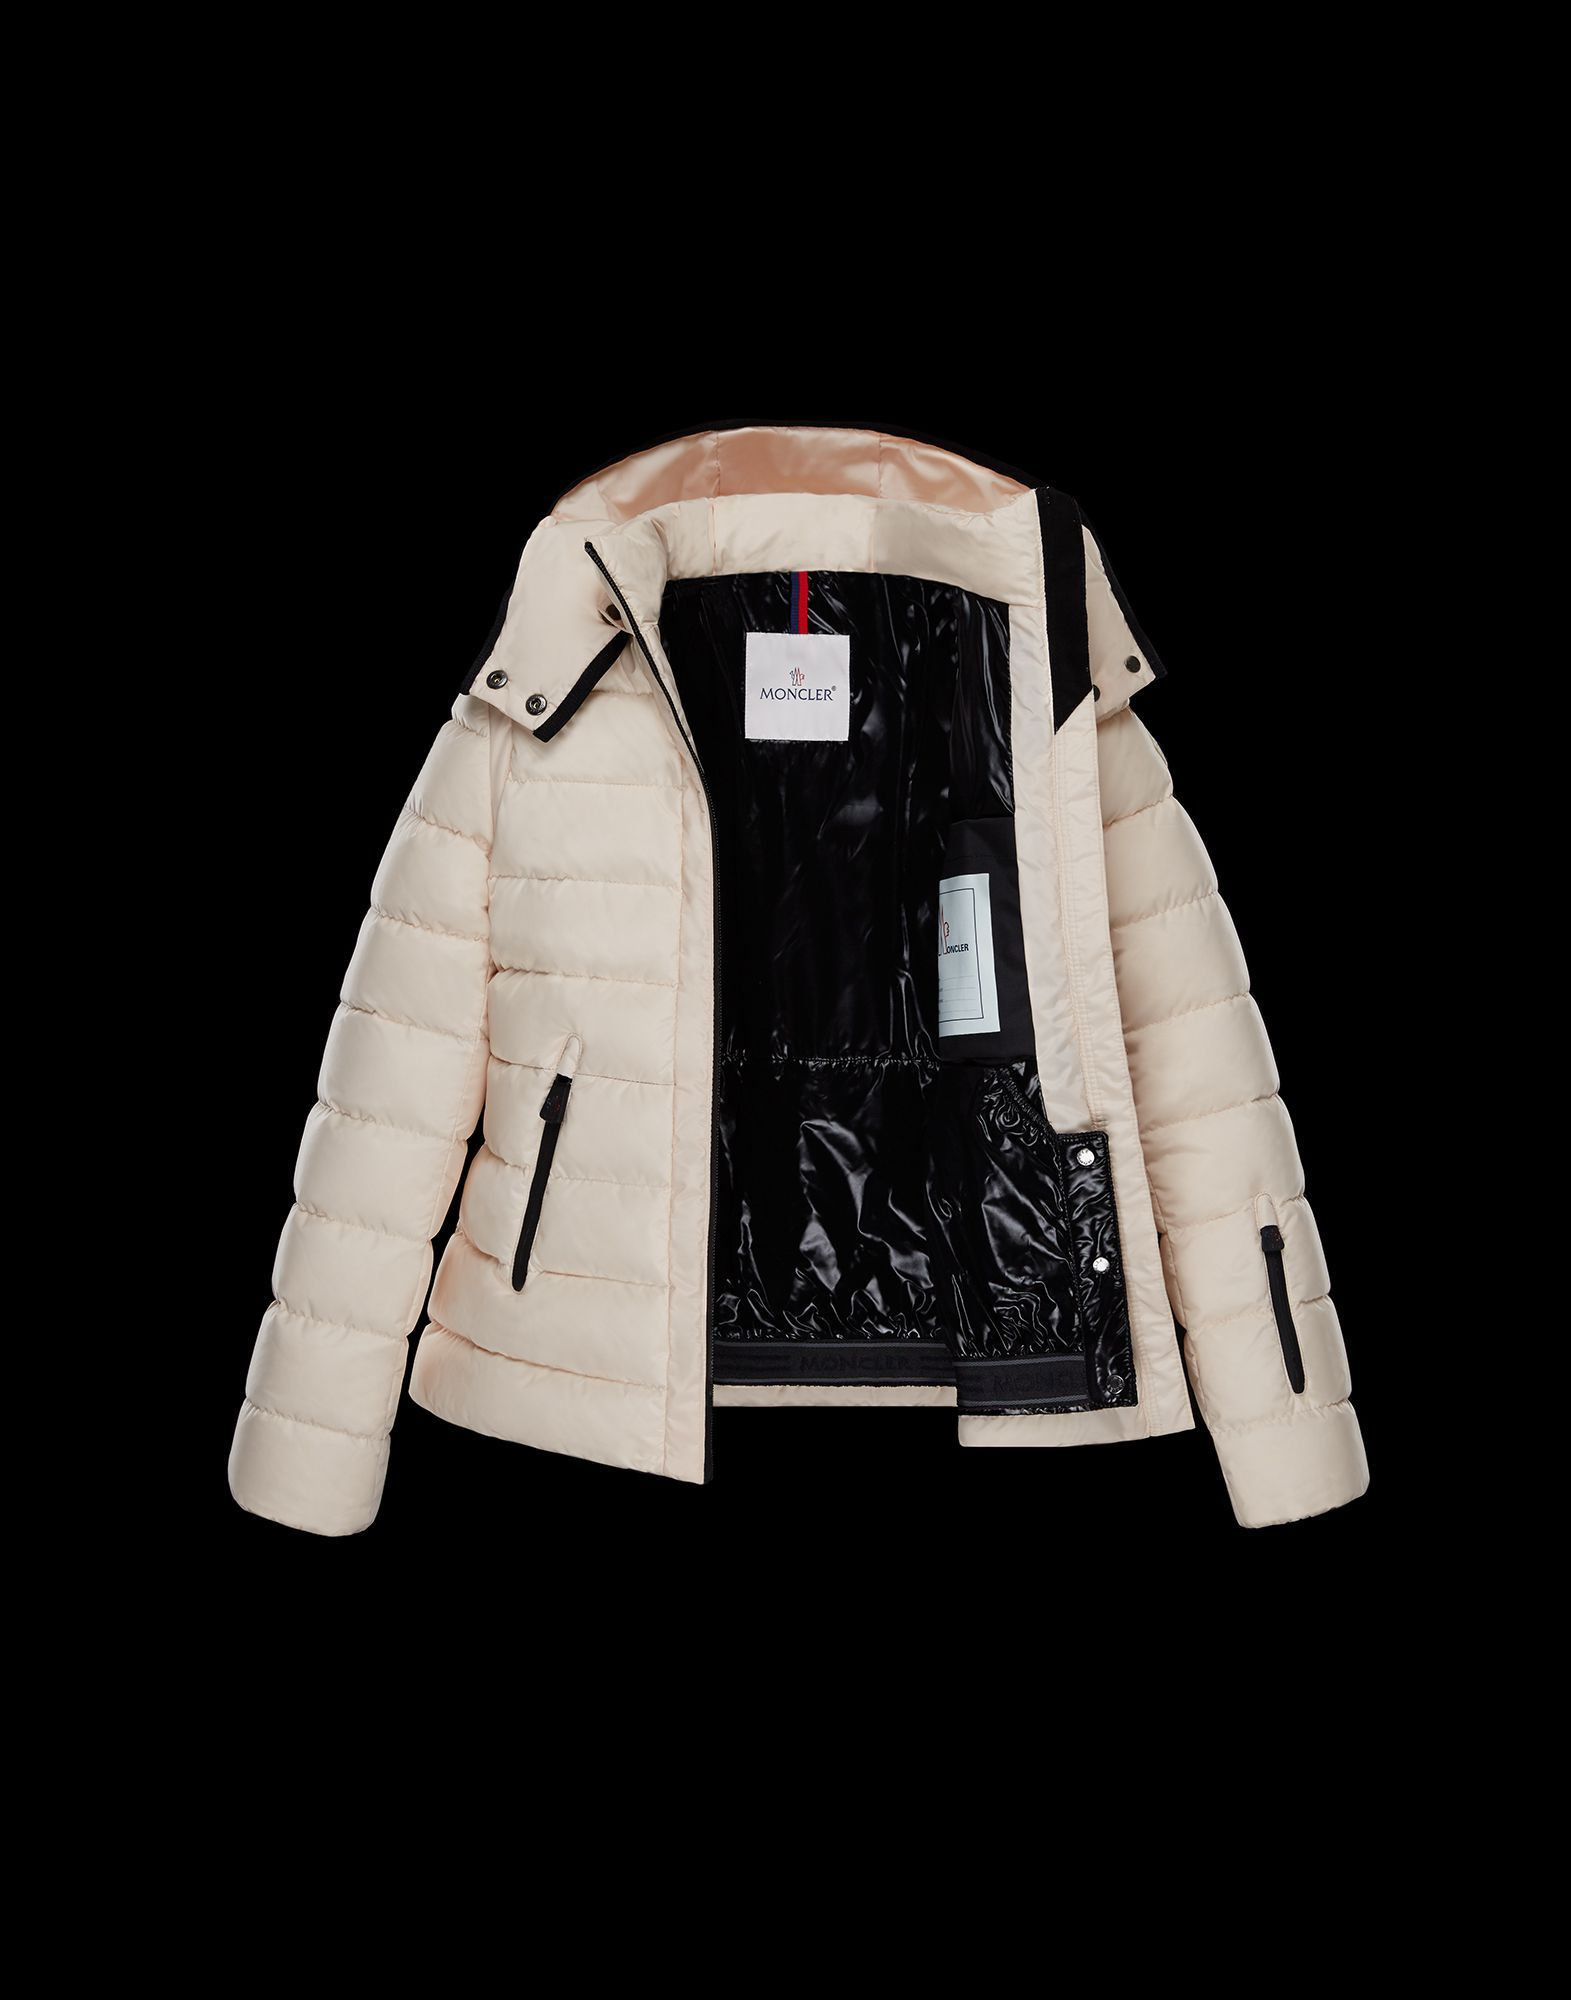 TOPセラー賞受賞!17AW┃MONCLER★4-6歳_EMERAUDE_ライトピンク